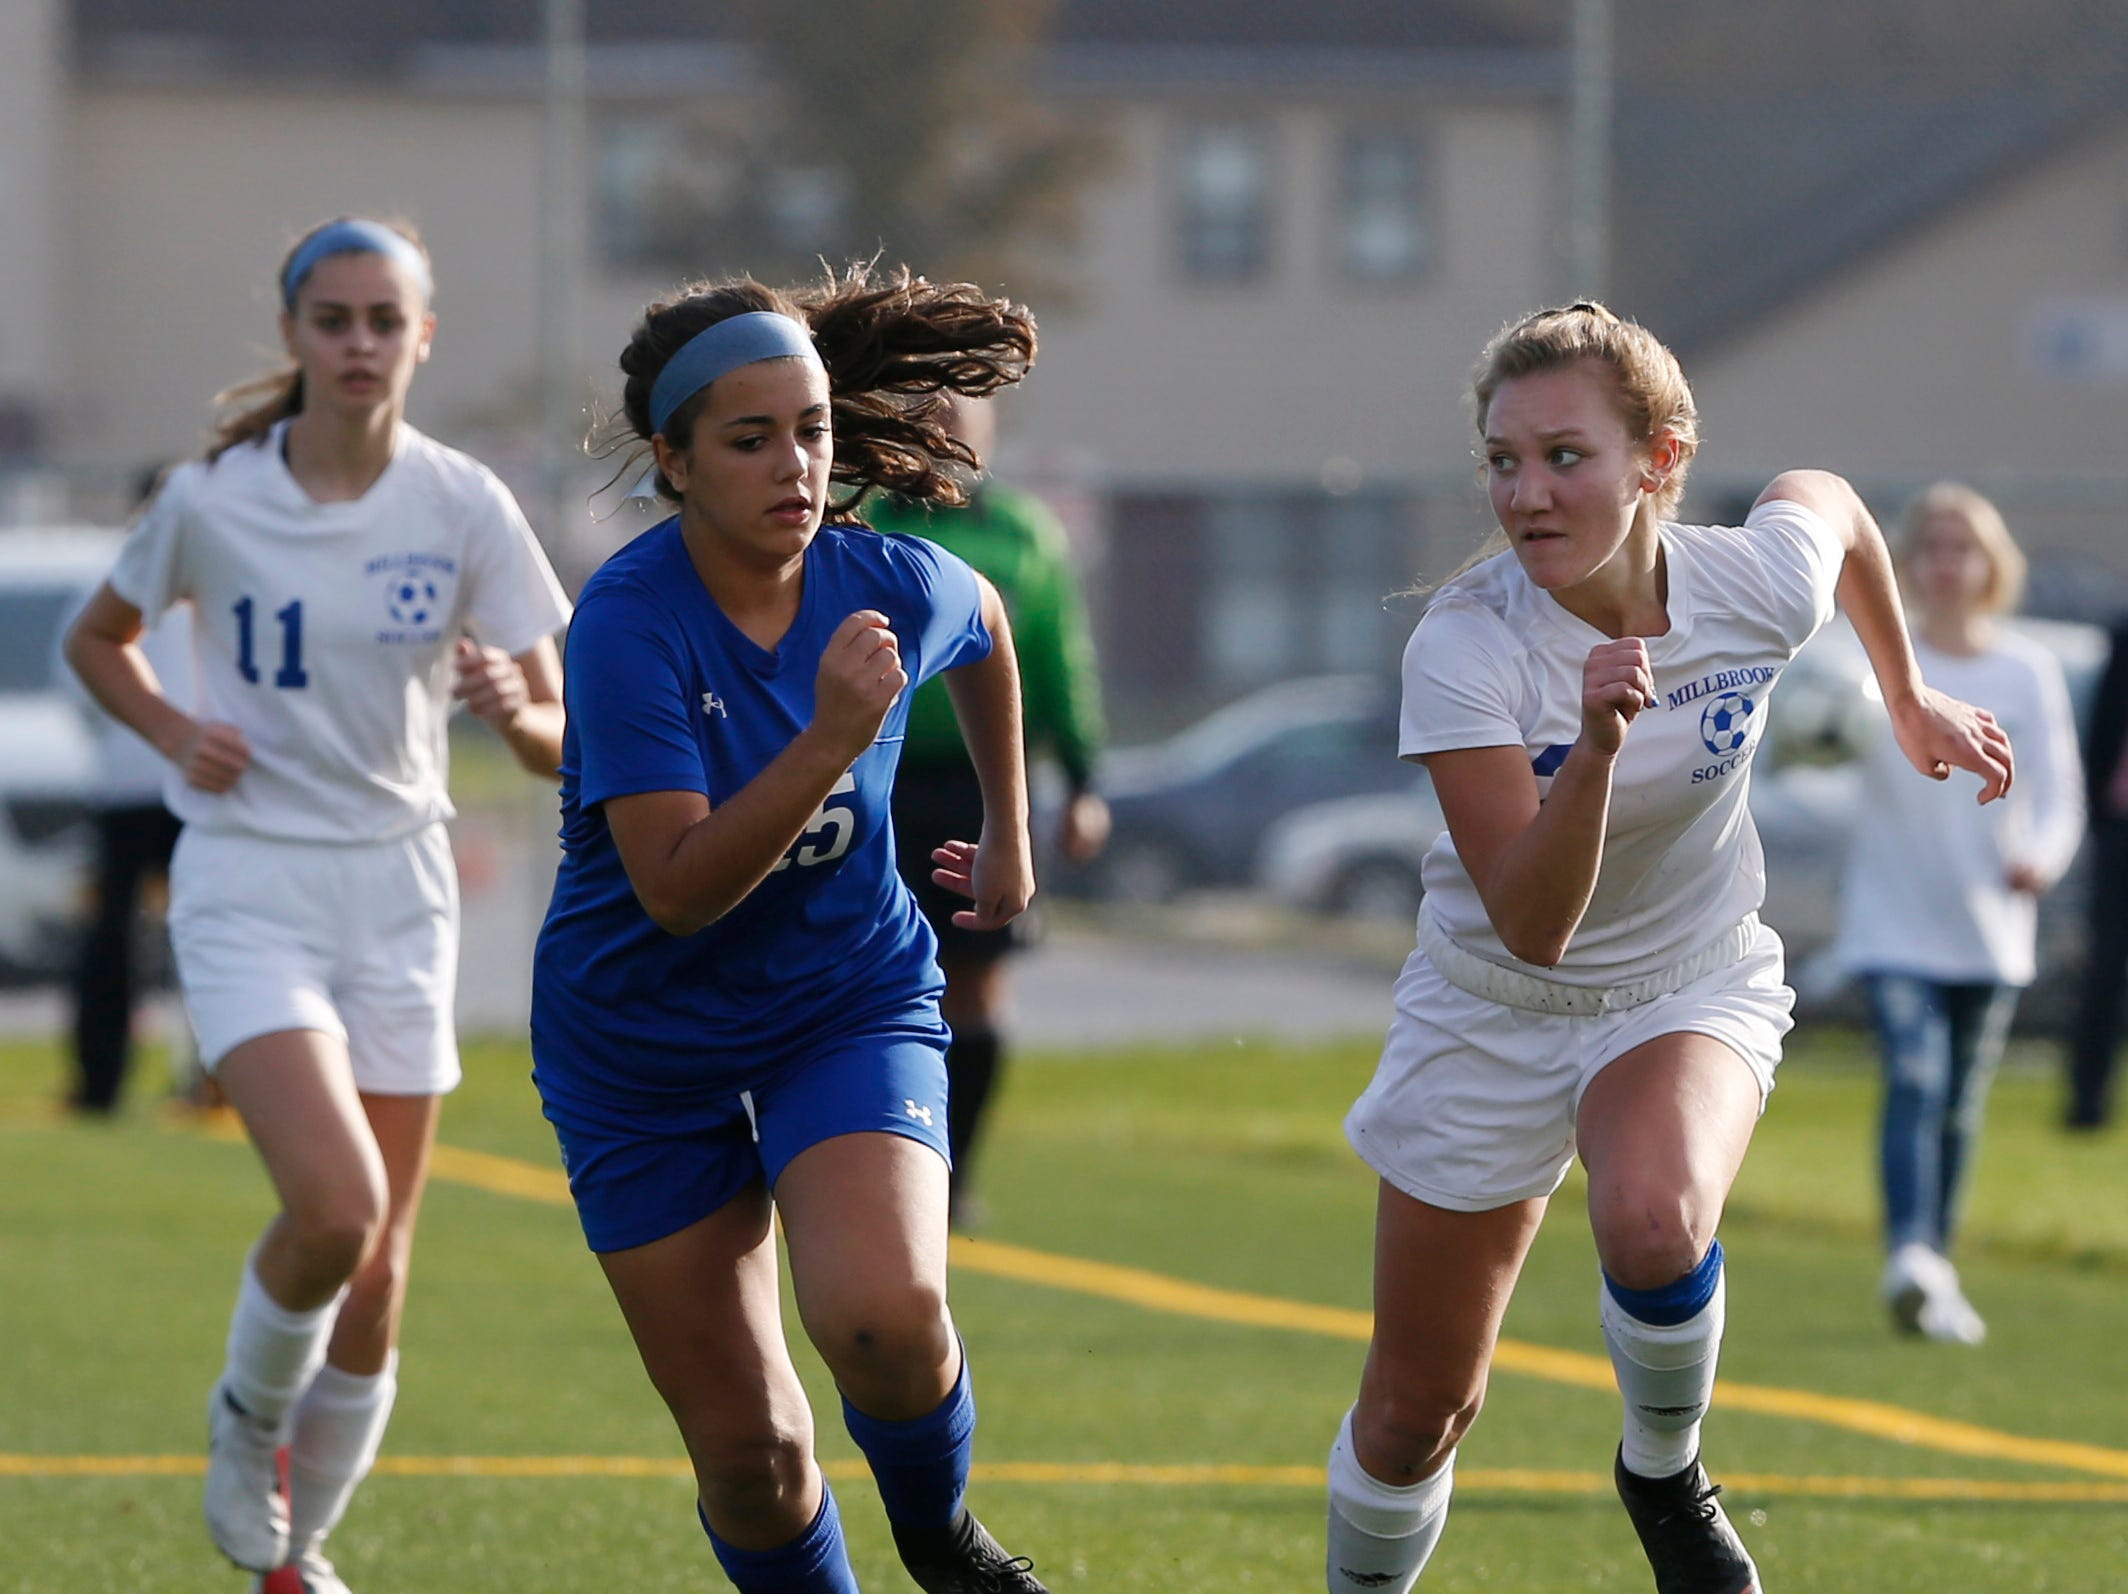 Haldane's Alexandra Ferreira and  Millbrook's Arianna Radovic  race for the ball during Wednesday's Class C regional semifinal in Freedom Plains on October 31, 2018.